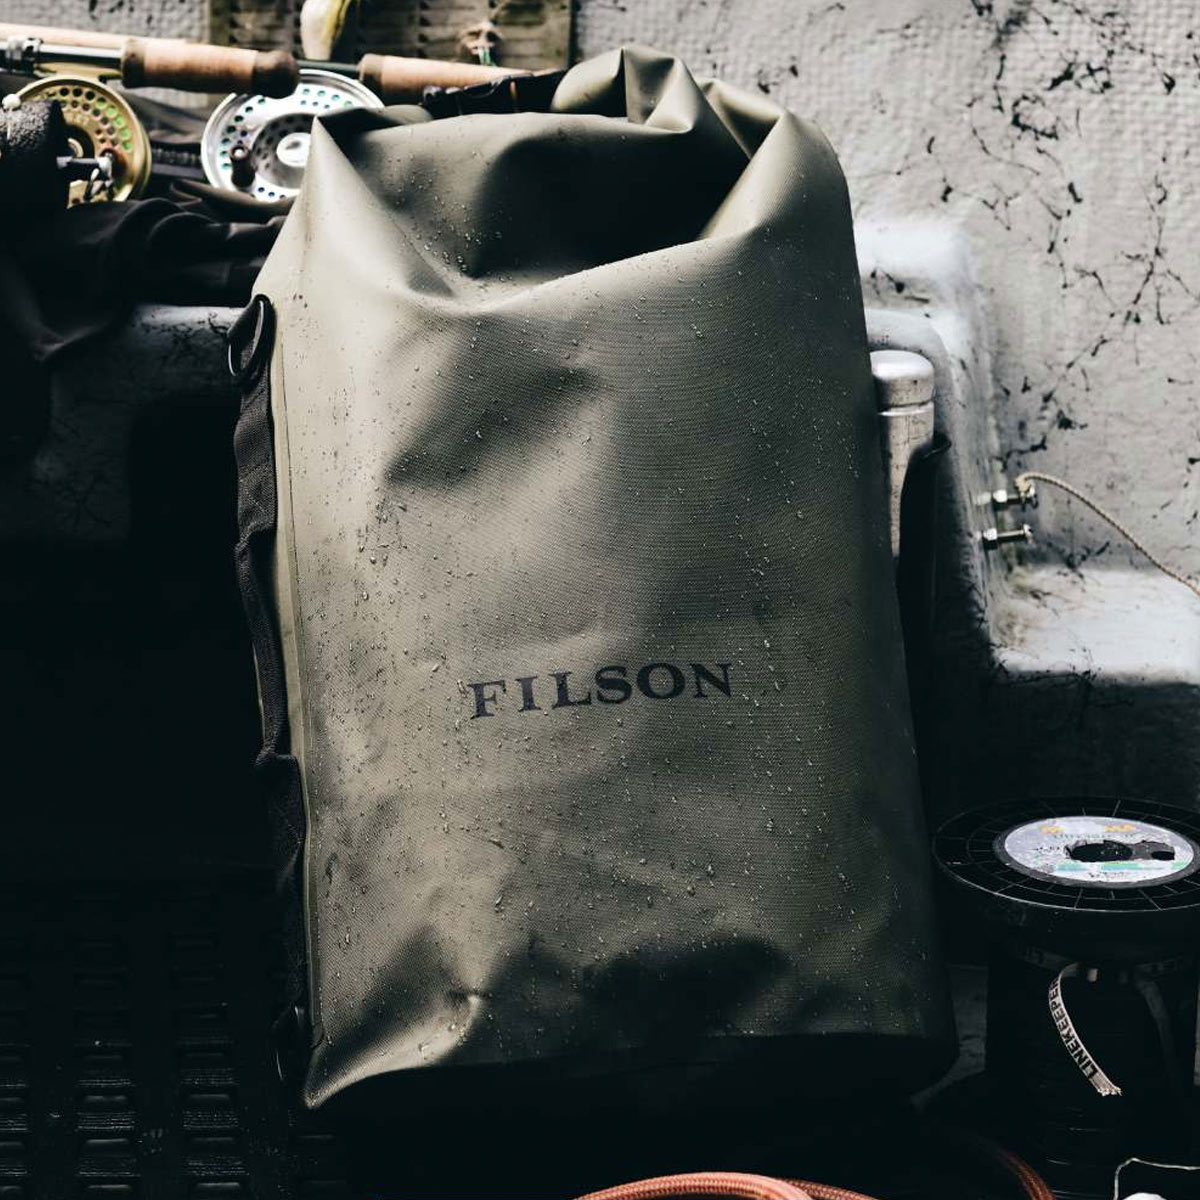 Filson Dry Bag Large, waterproof and lightweight